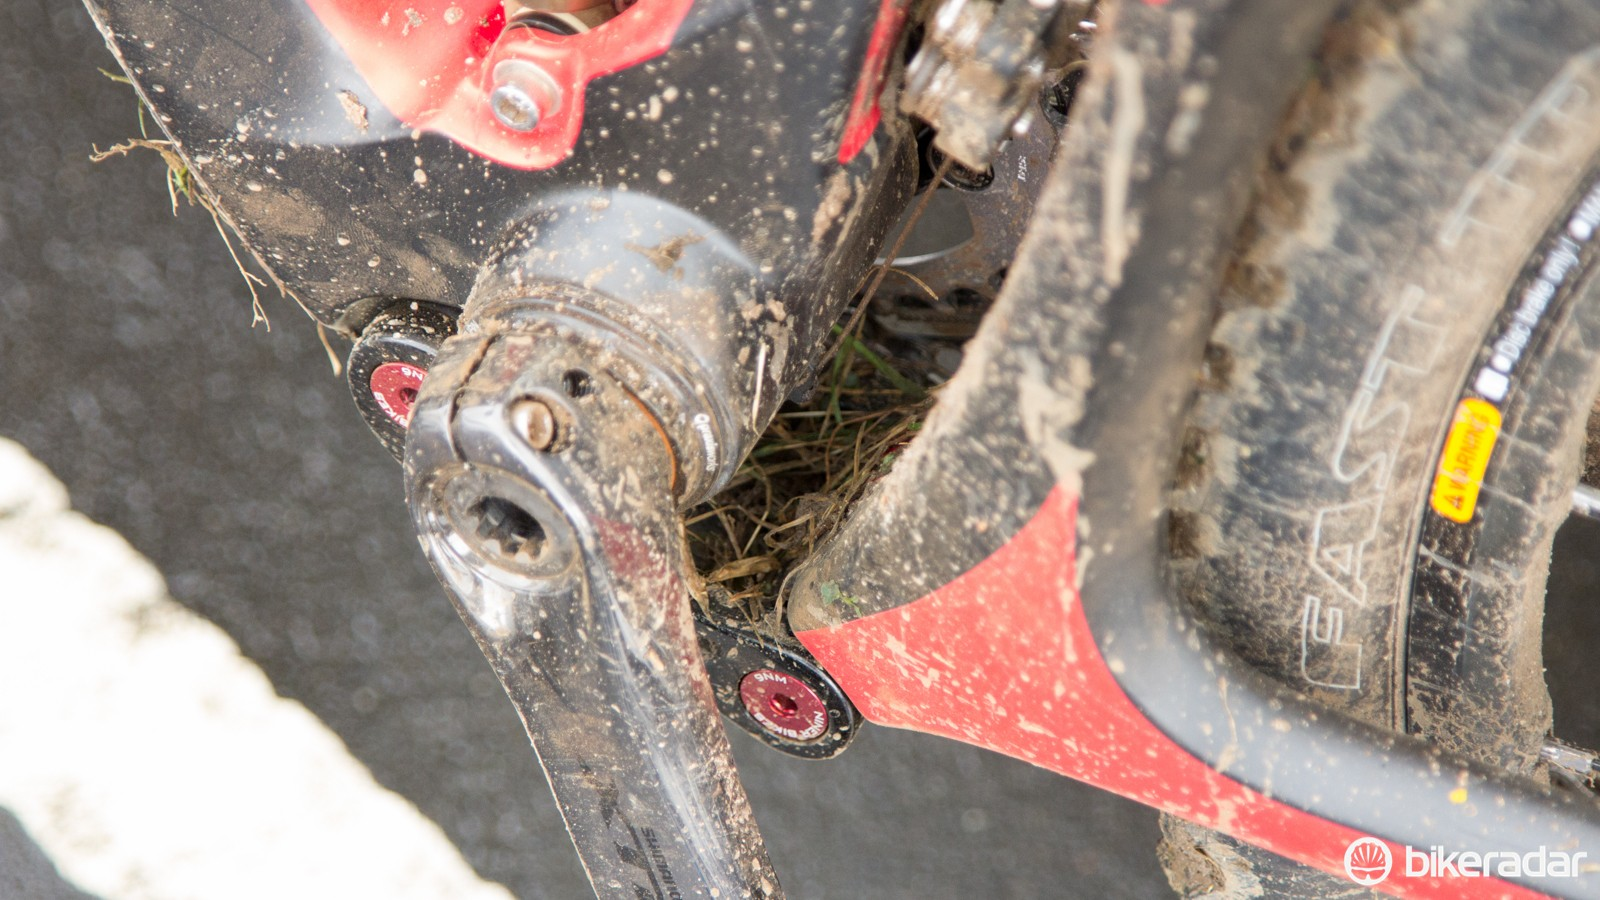 Light rain, a little mud and some grass riding created a mess by the end